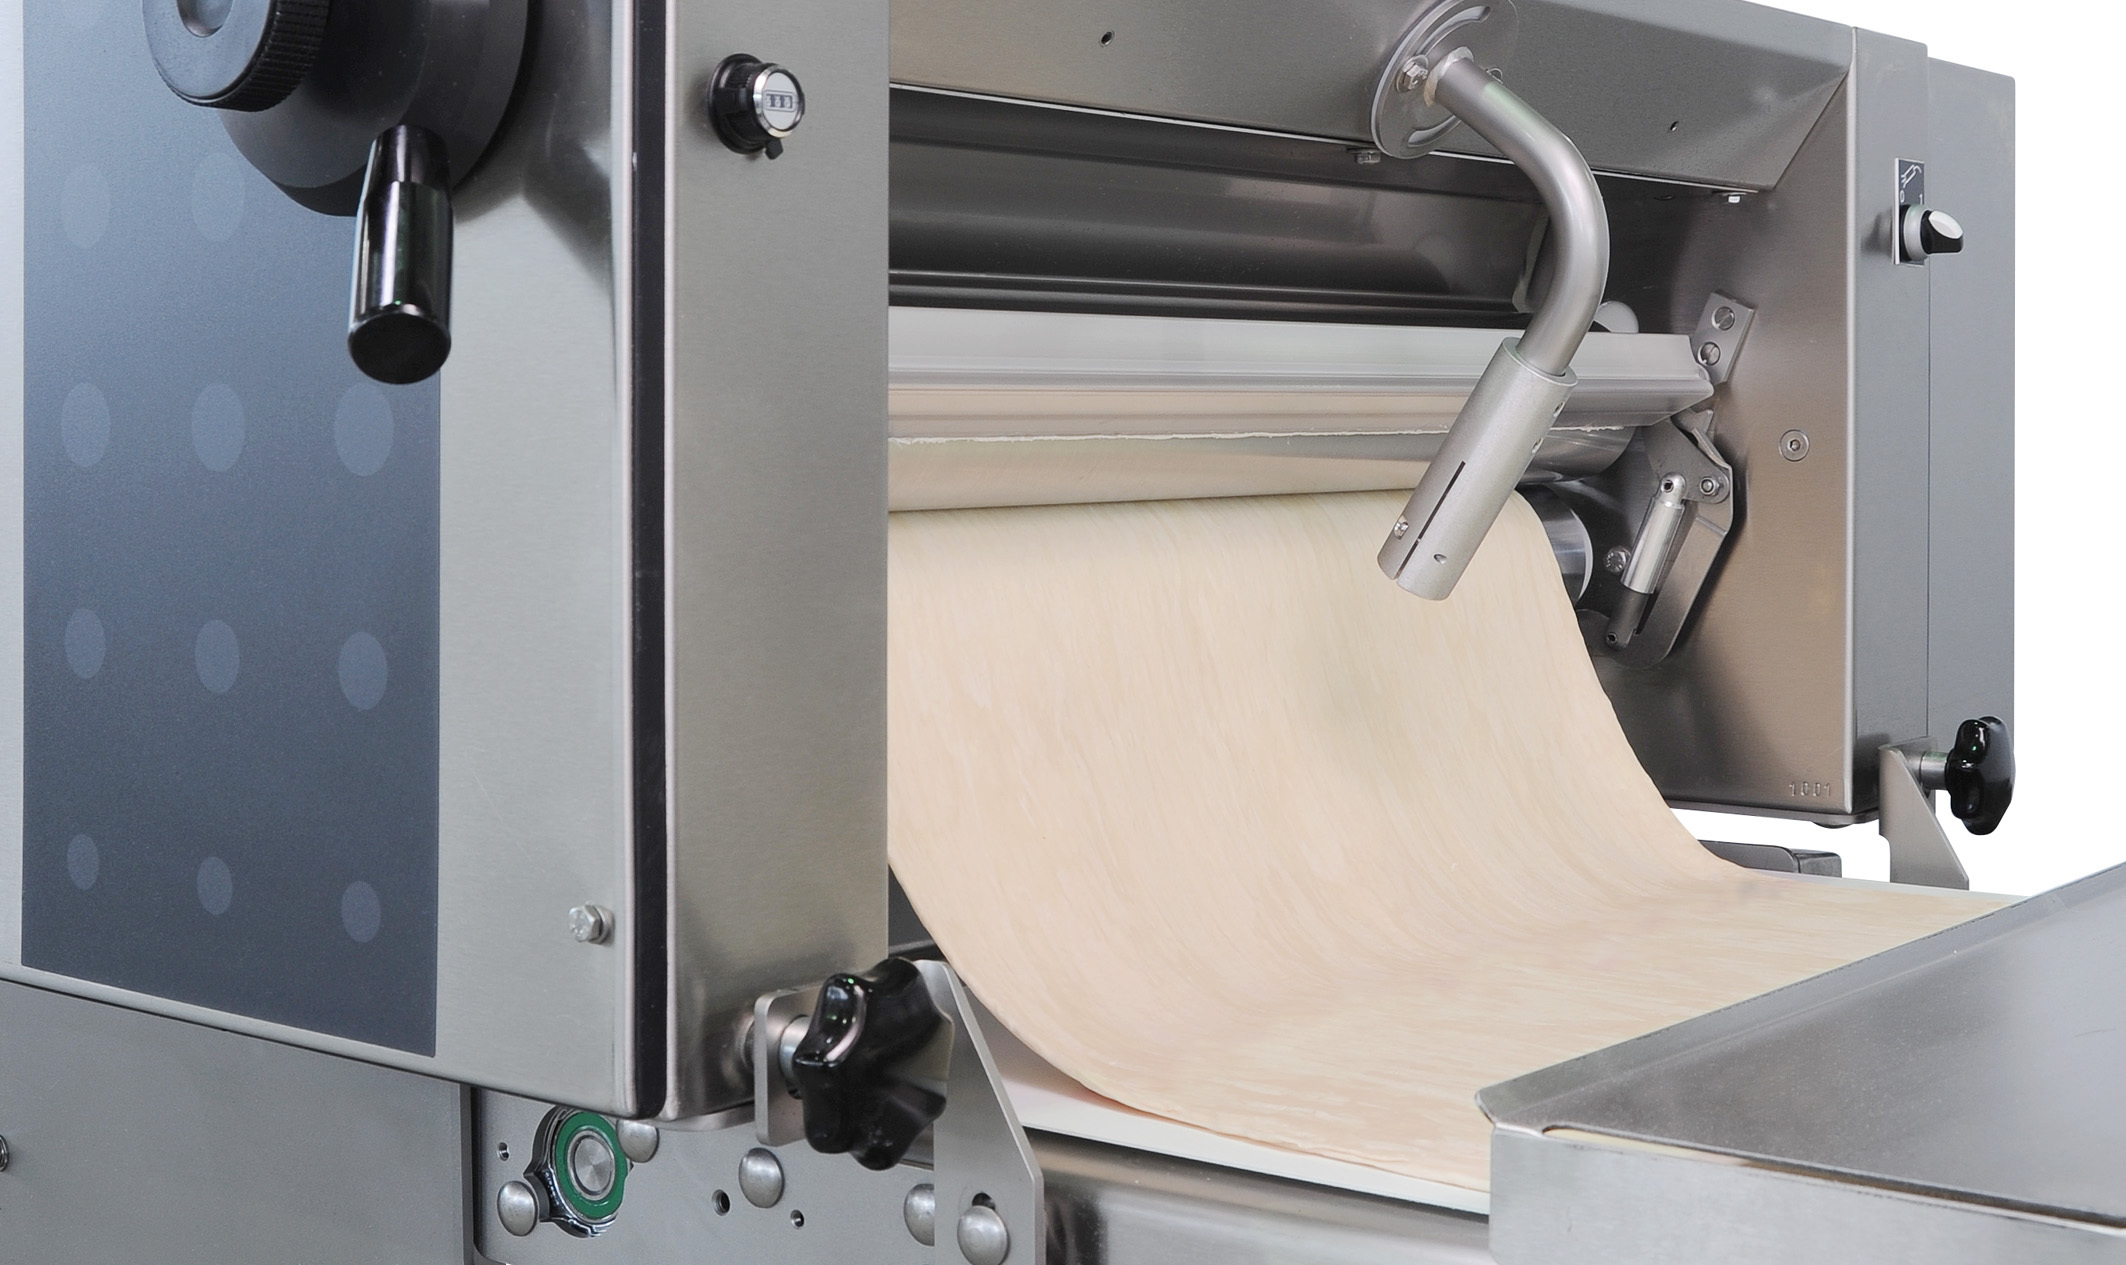 FRITSCH bakery machines pastries Easyline tête calibreuse